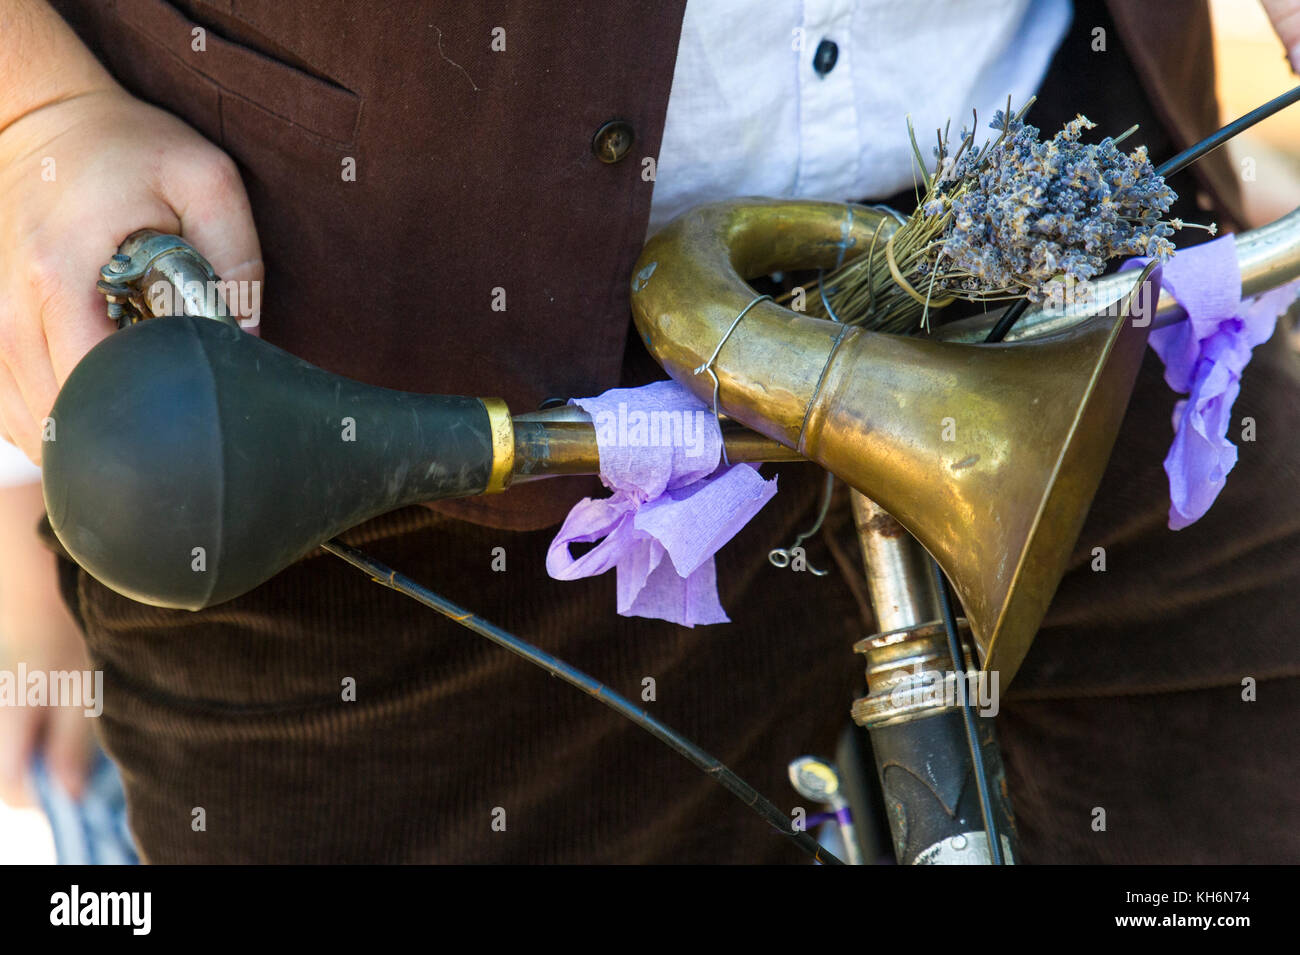 Europe, France, Vaucluse, (84), Pays de Sault. Lavender festival, detail of a old bicycle. - Stock Image